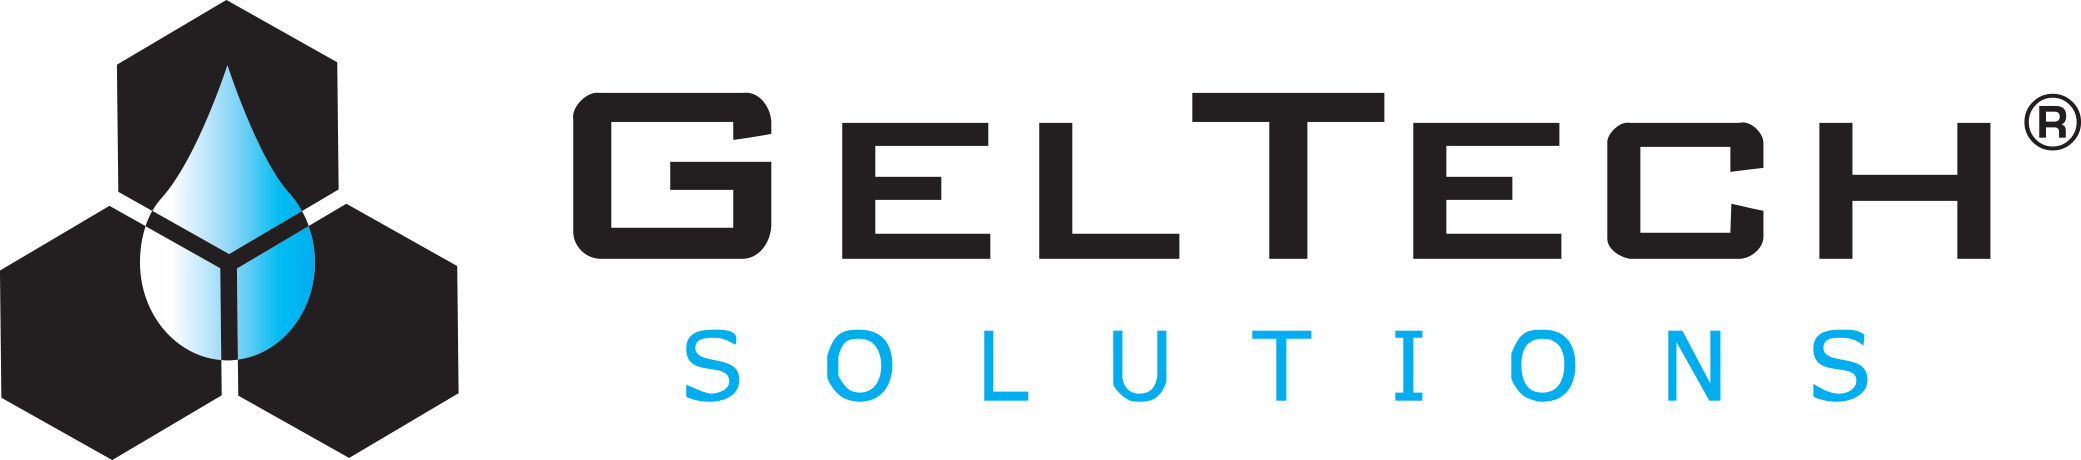 GelTech Solutions Official Logo